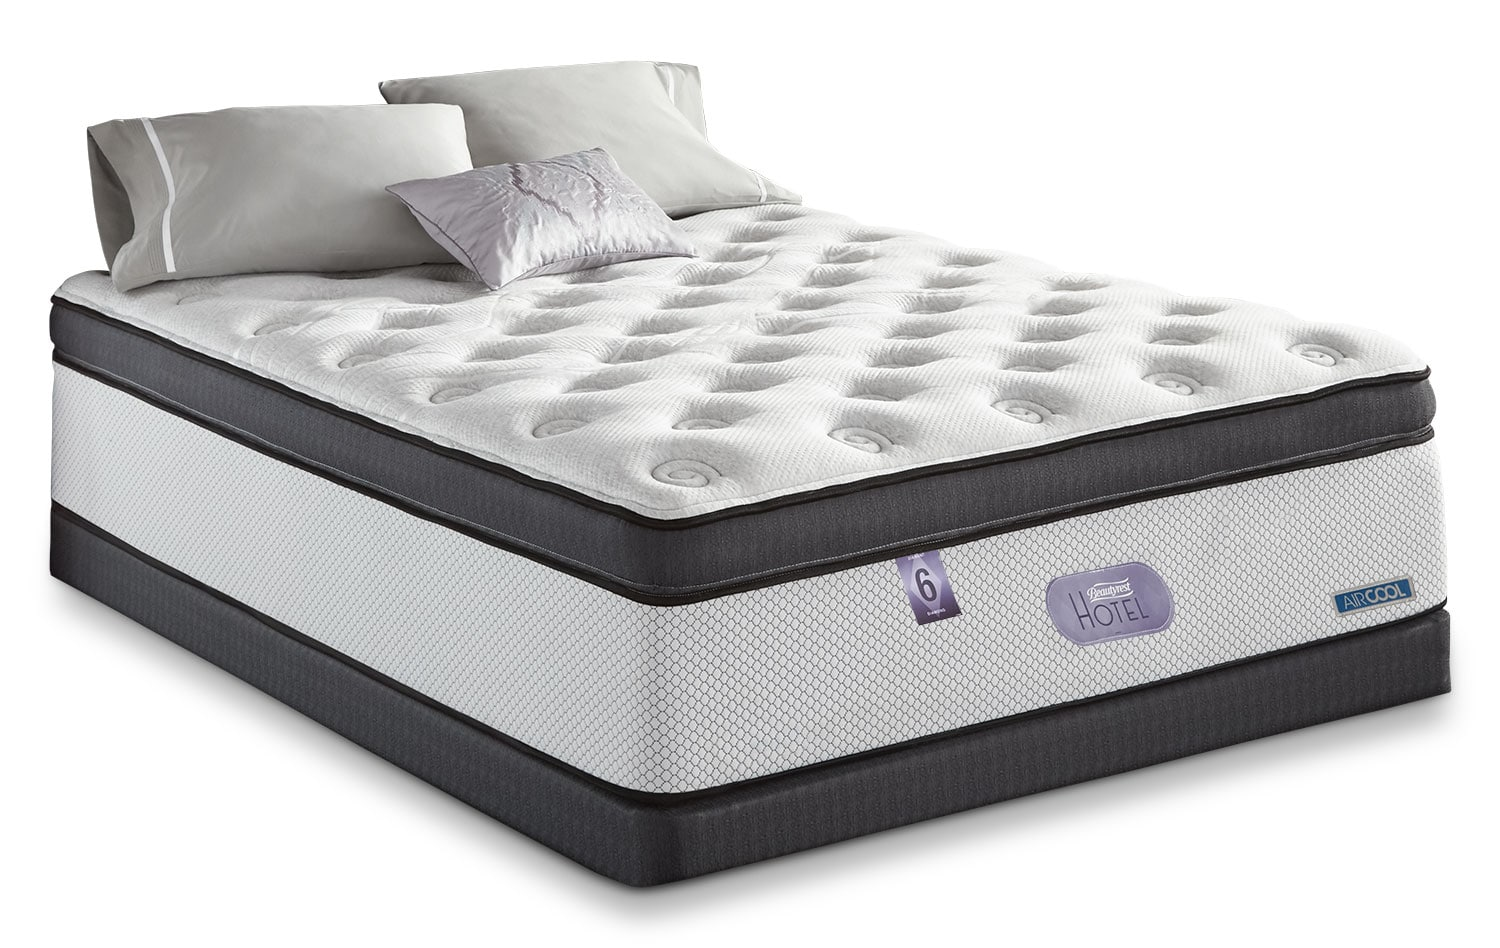 Mattresses and Bedding - Simmons Beautyrest® Hotel Diamond 6.0 Ultra Comfort Top Plush Queen Mattress Set